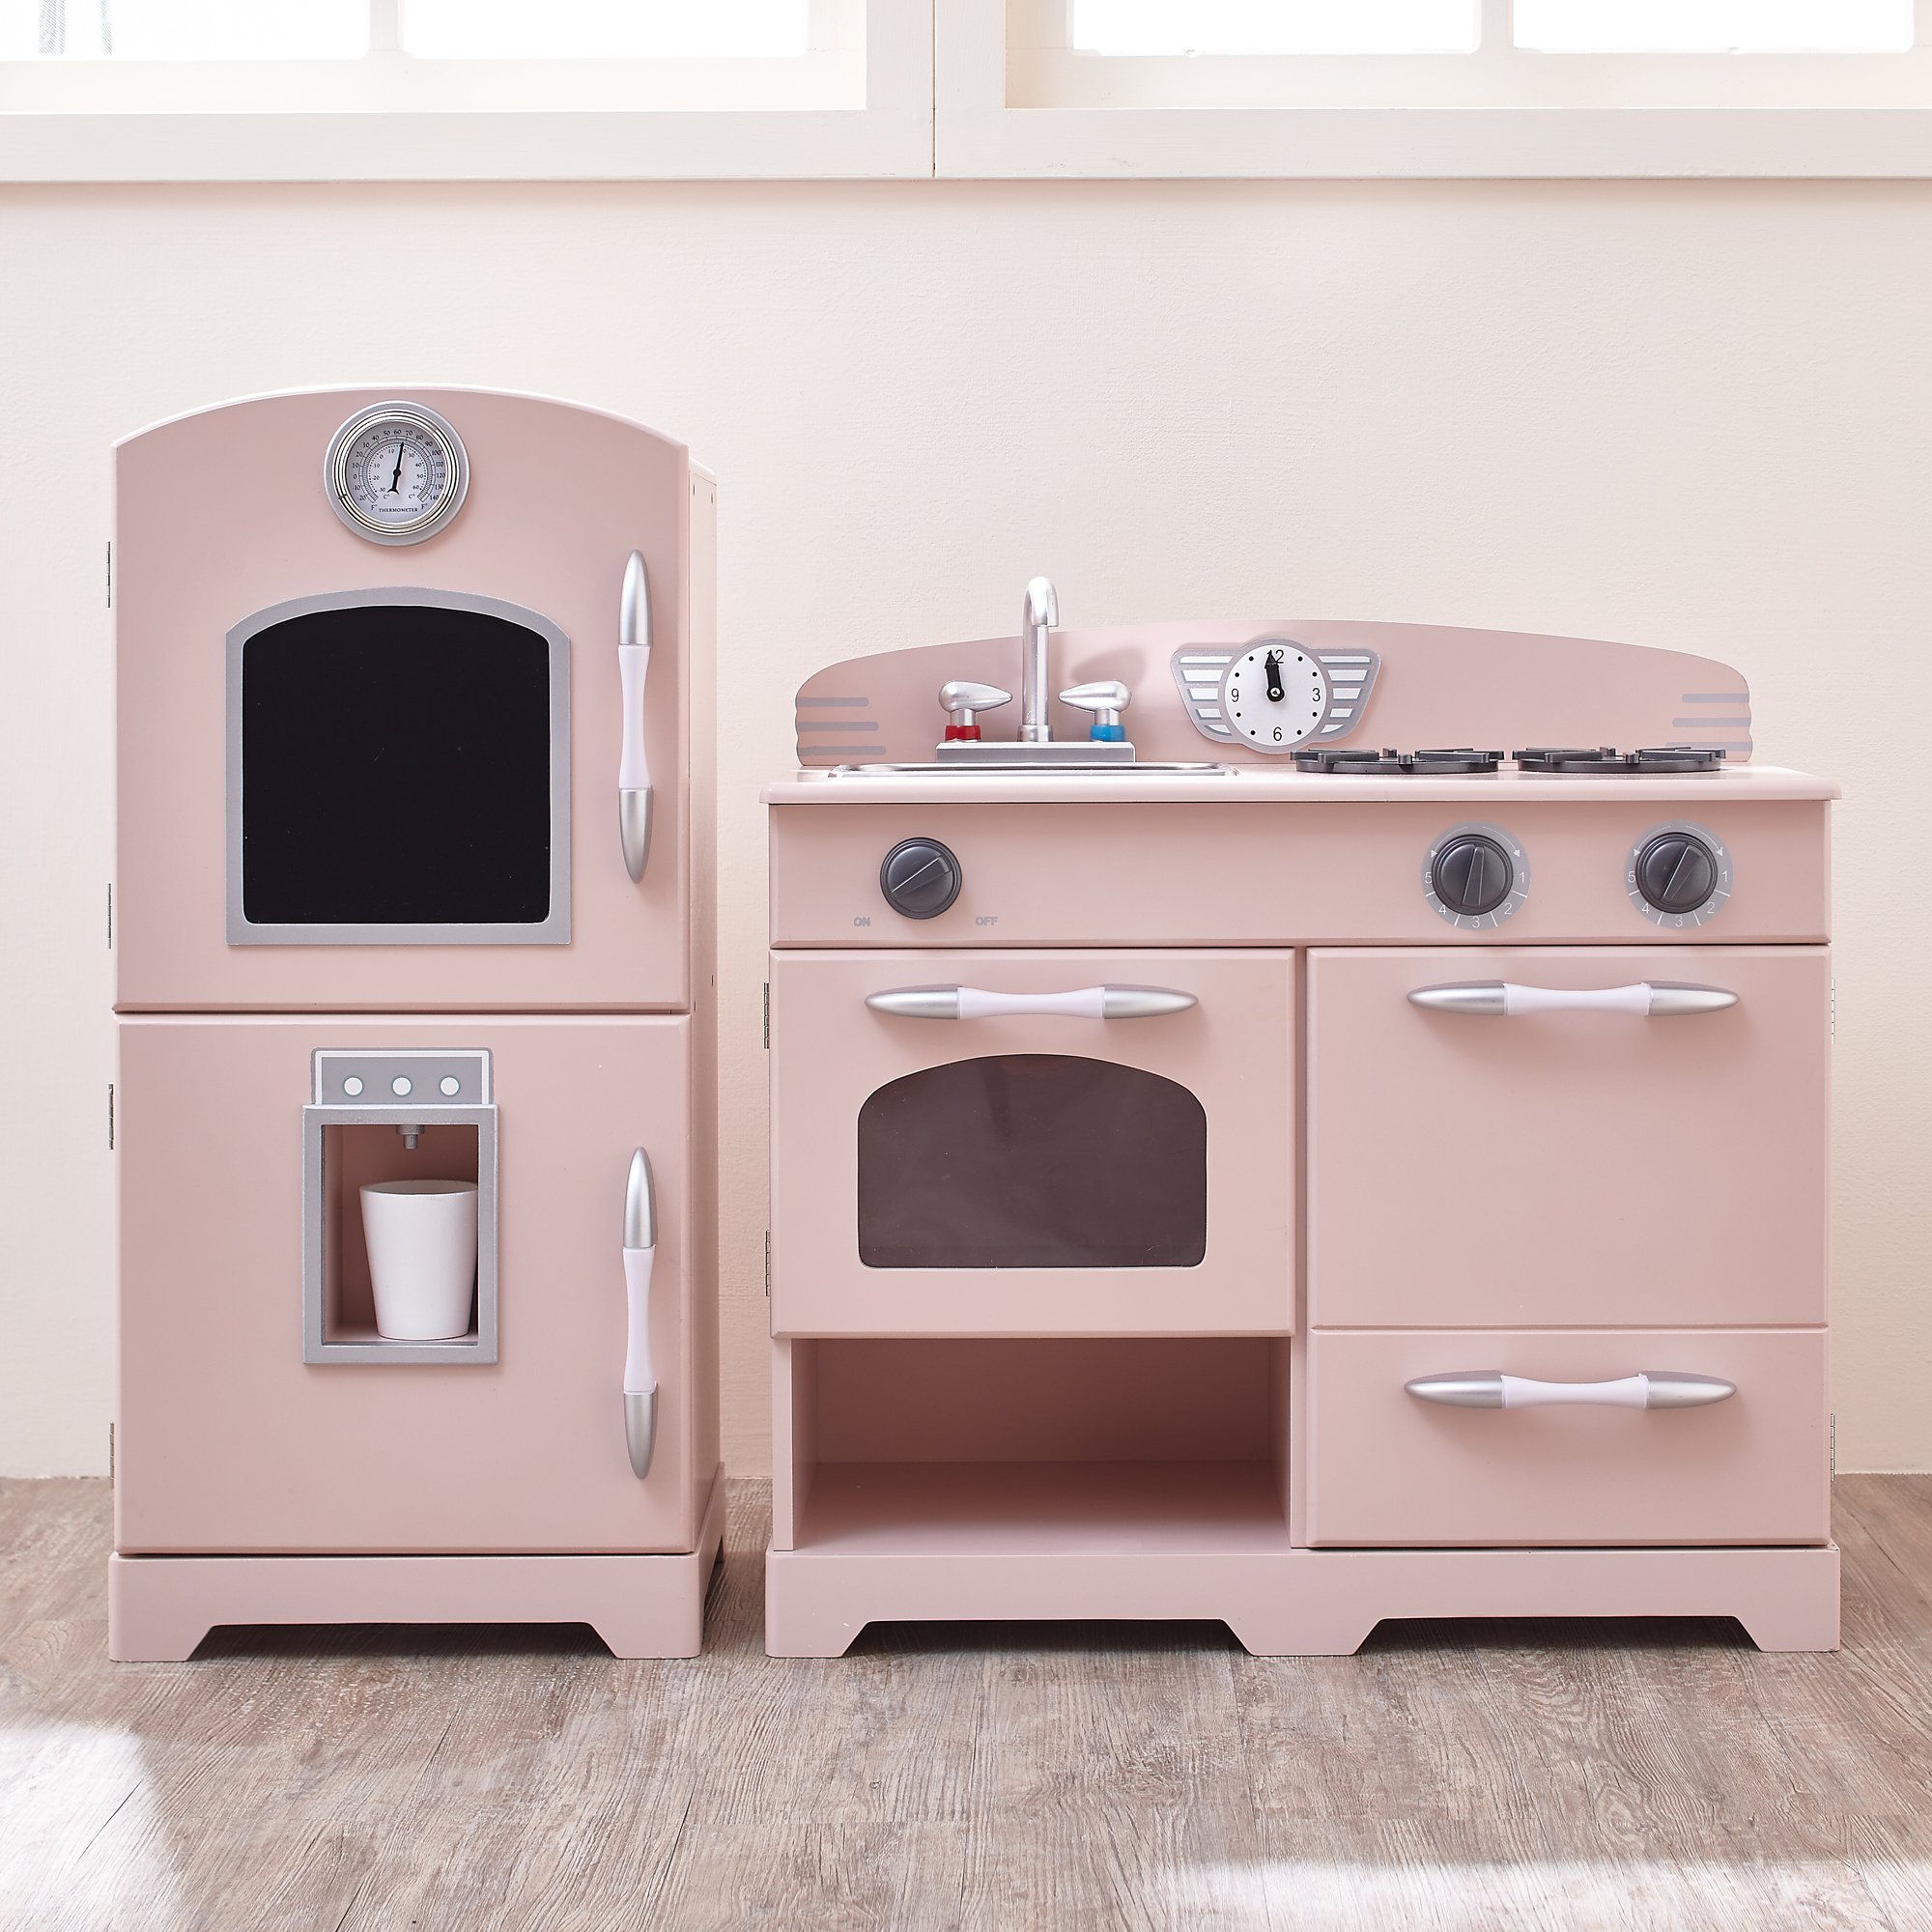 Teamson Kids - Retro Wooden Play Kitchen with Refrigerator, Freezer, Oven and Dishwasher - Pink (2 Pieces) by Teamson Kids (Image #3)